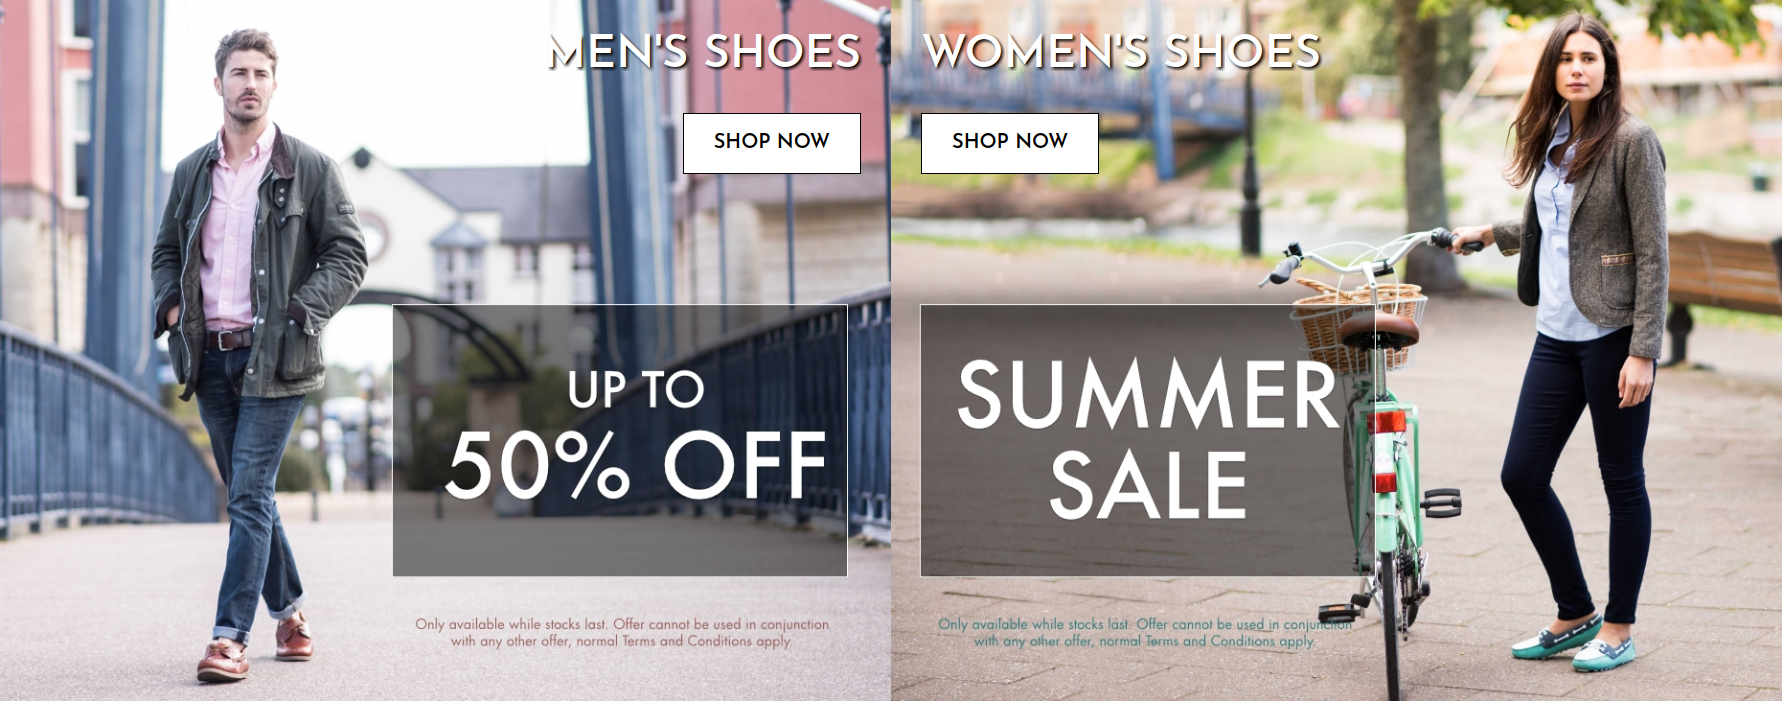 Chatham: Sale up to 50% off mens and womens shoes